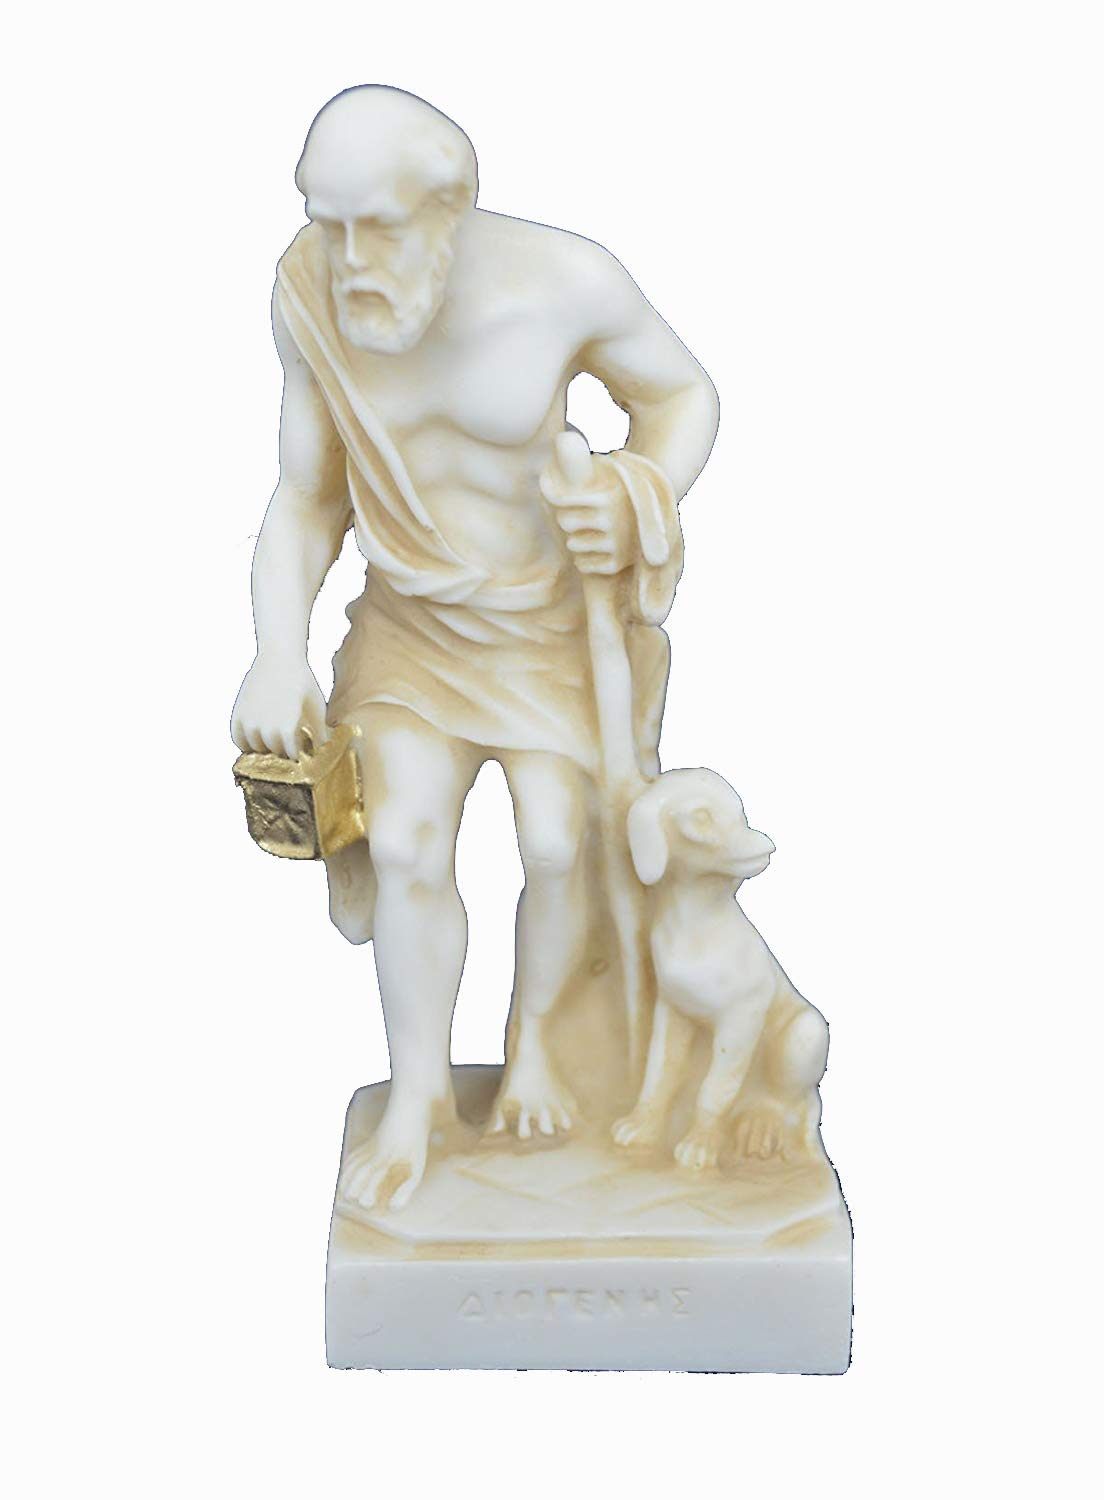 Estia Creations Diogenes Sculpture The Cynic Aged Statue Ancient Greek Philosopher by Estia Creations